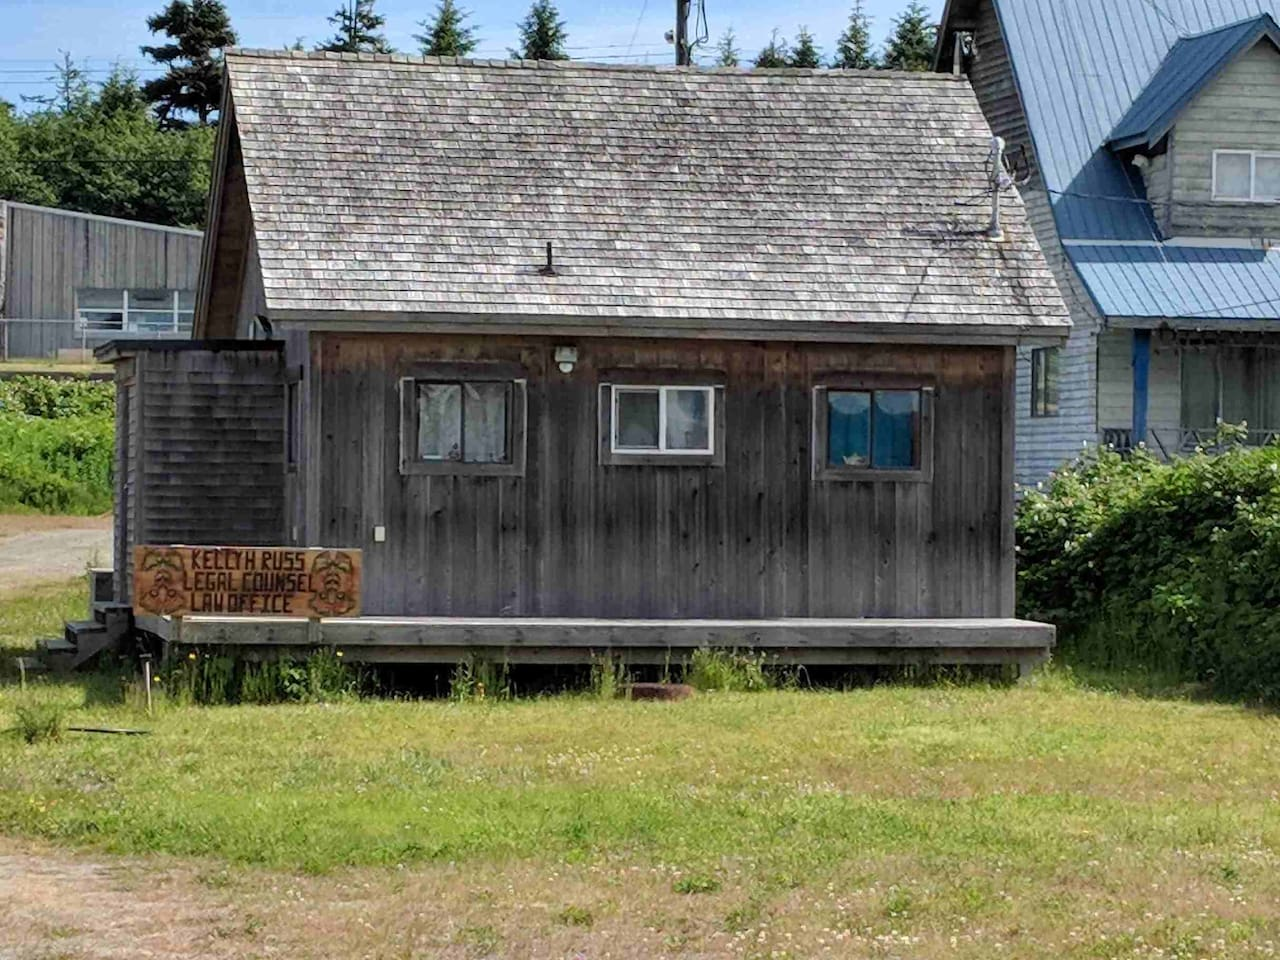 This is the exterior of the cabin which is a law office once per month.